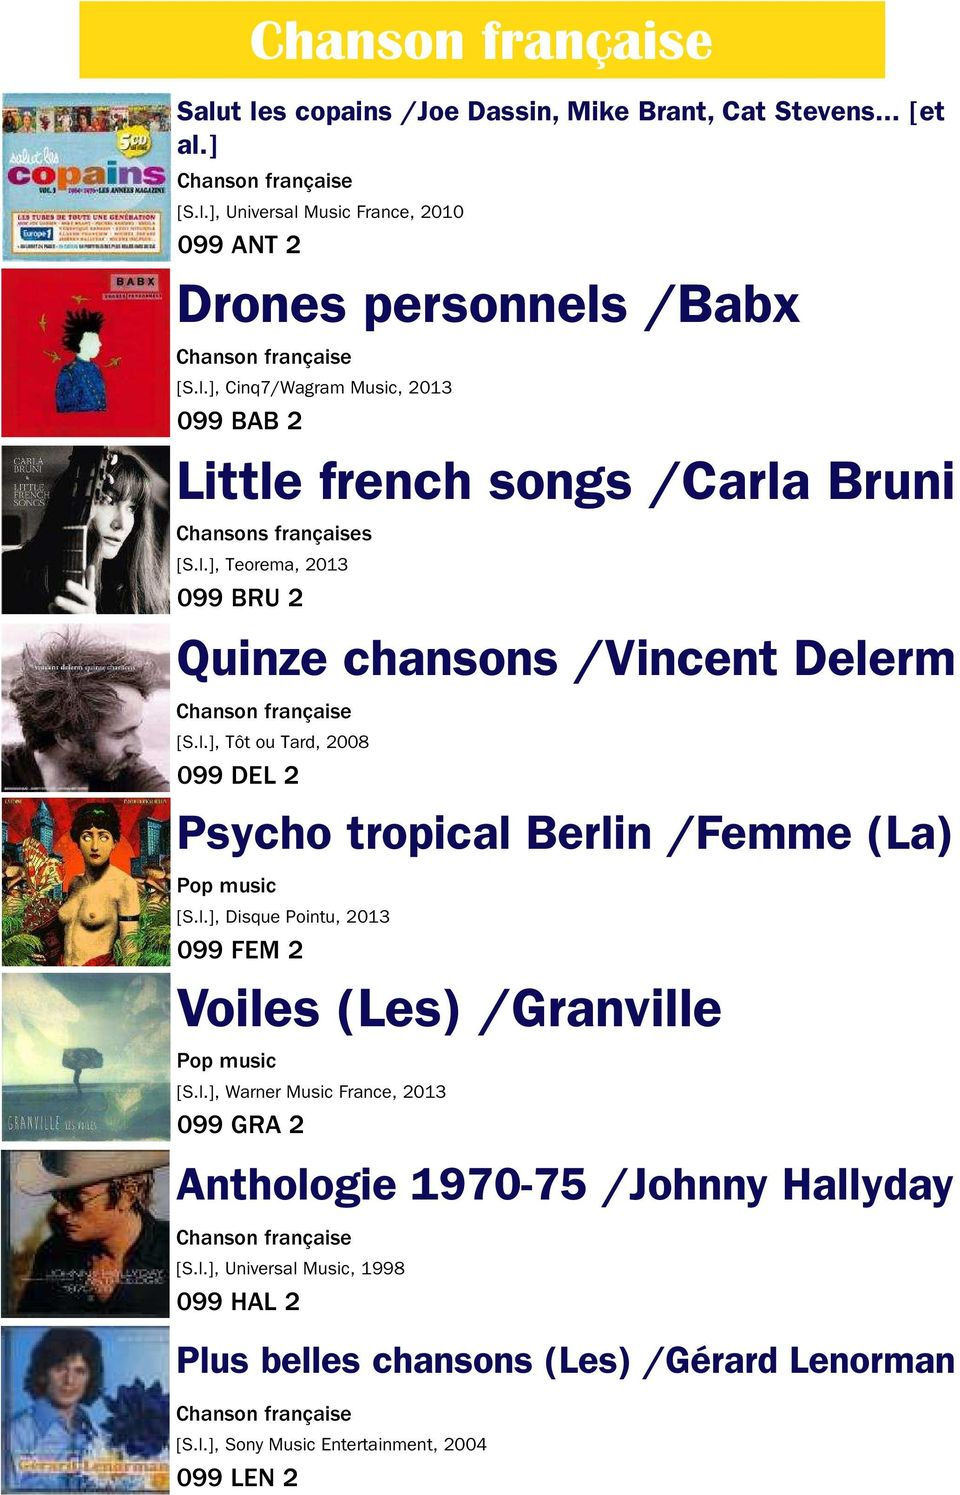 l.], Warner Music France, 2013 099 GRA 2 Anthologie 1970-75 /Johnny Hallyday [S.l.], Universal Music, 1998 099 HAL 2 Plus belles chansons (Les) /Gérard Lenorman [S.